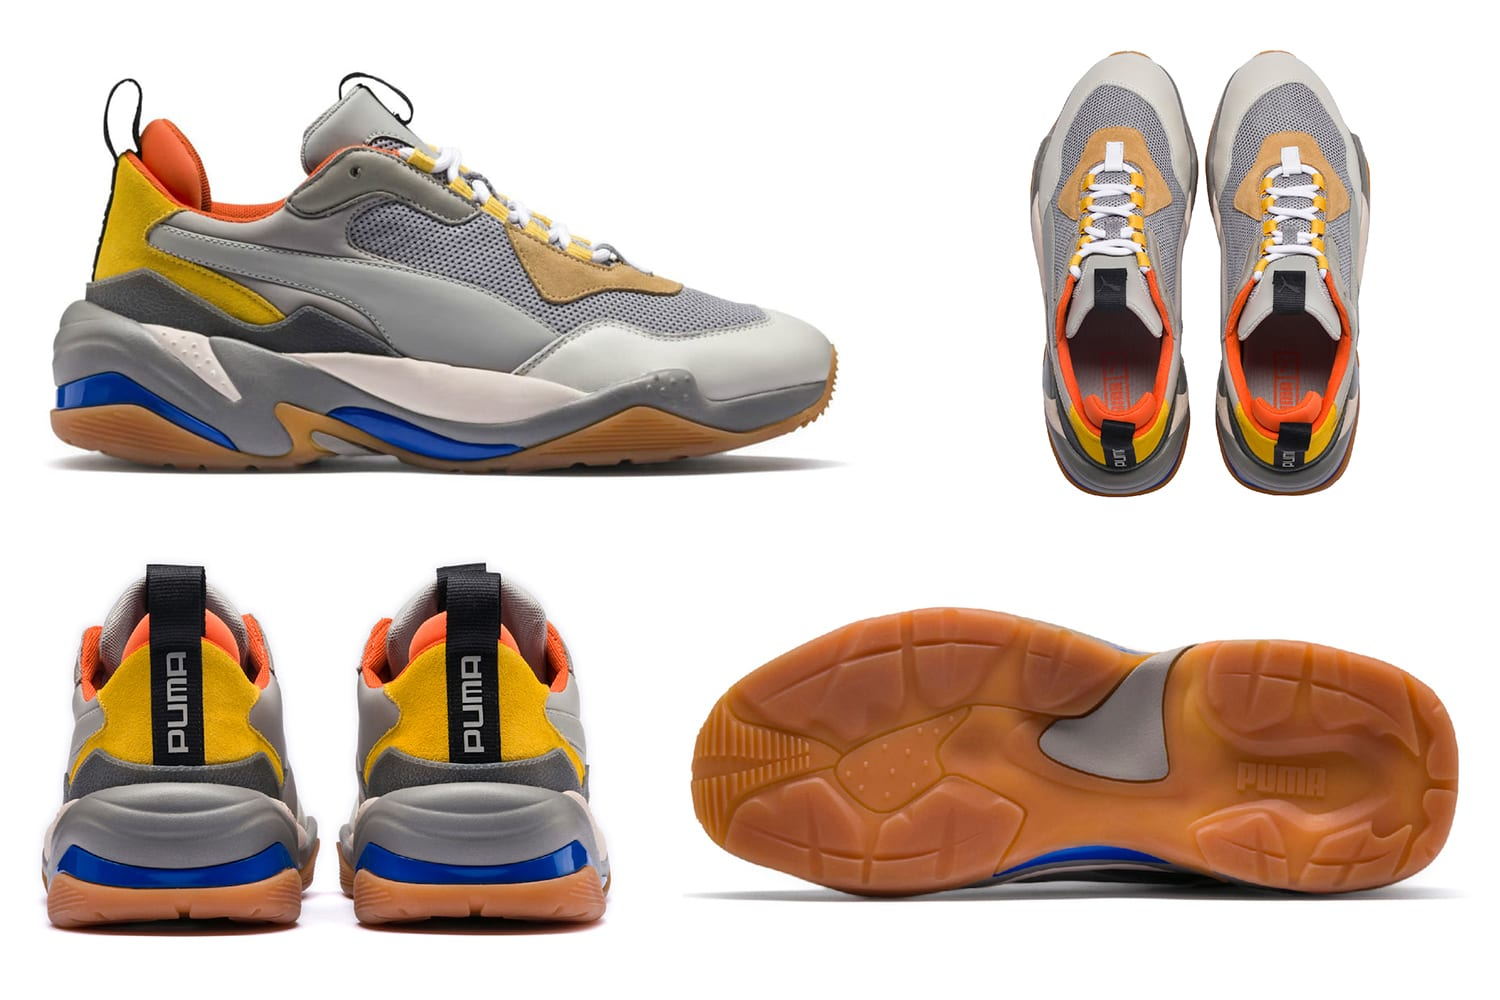 7292618ccfb Home  PUMA -Thunder-Spectra-Drizzle-Steel-Grey-367516-02-Release-Date-3